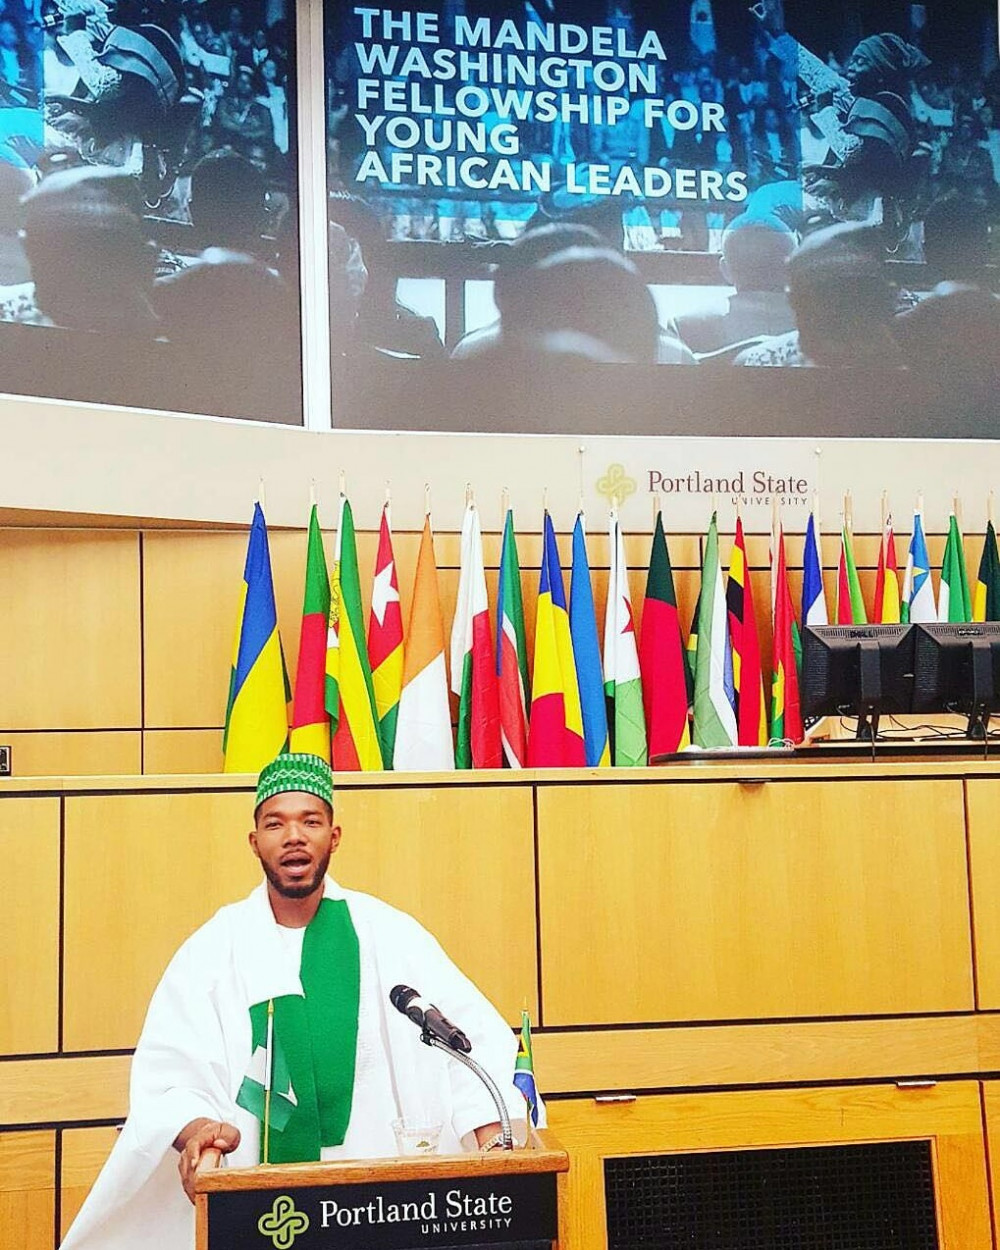 Otto Orondaam Mandela Washington Fellowship, Young African Leaders ( YALI )4